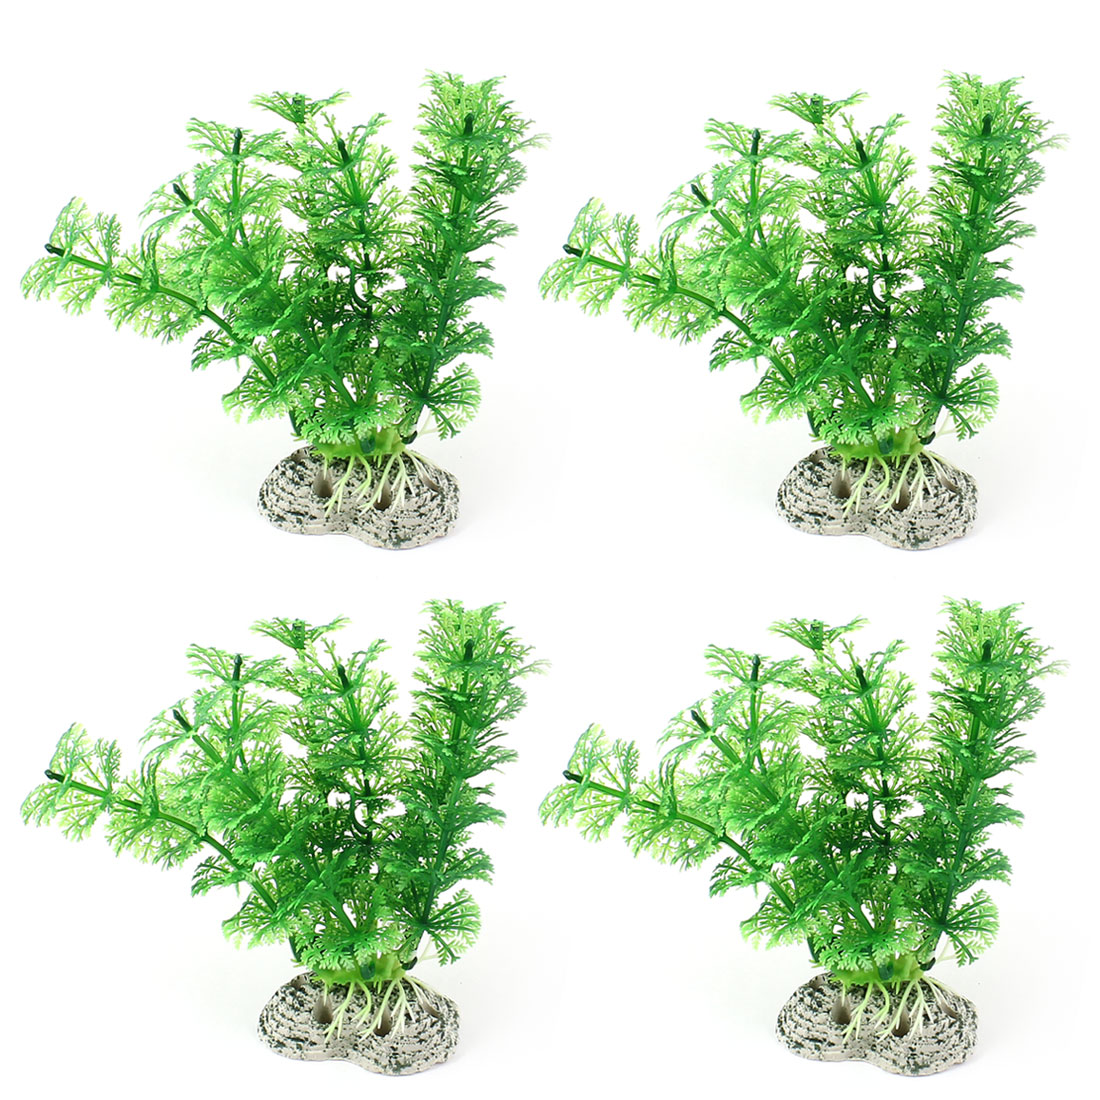 "Aquarium Fish Tank Landscaping Artificial Emulational Underwater Water Plant Grass Ornament Green 5.5"" Height 4pcs"